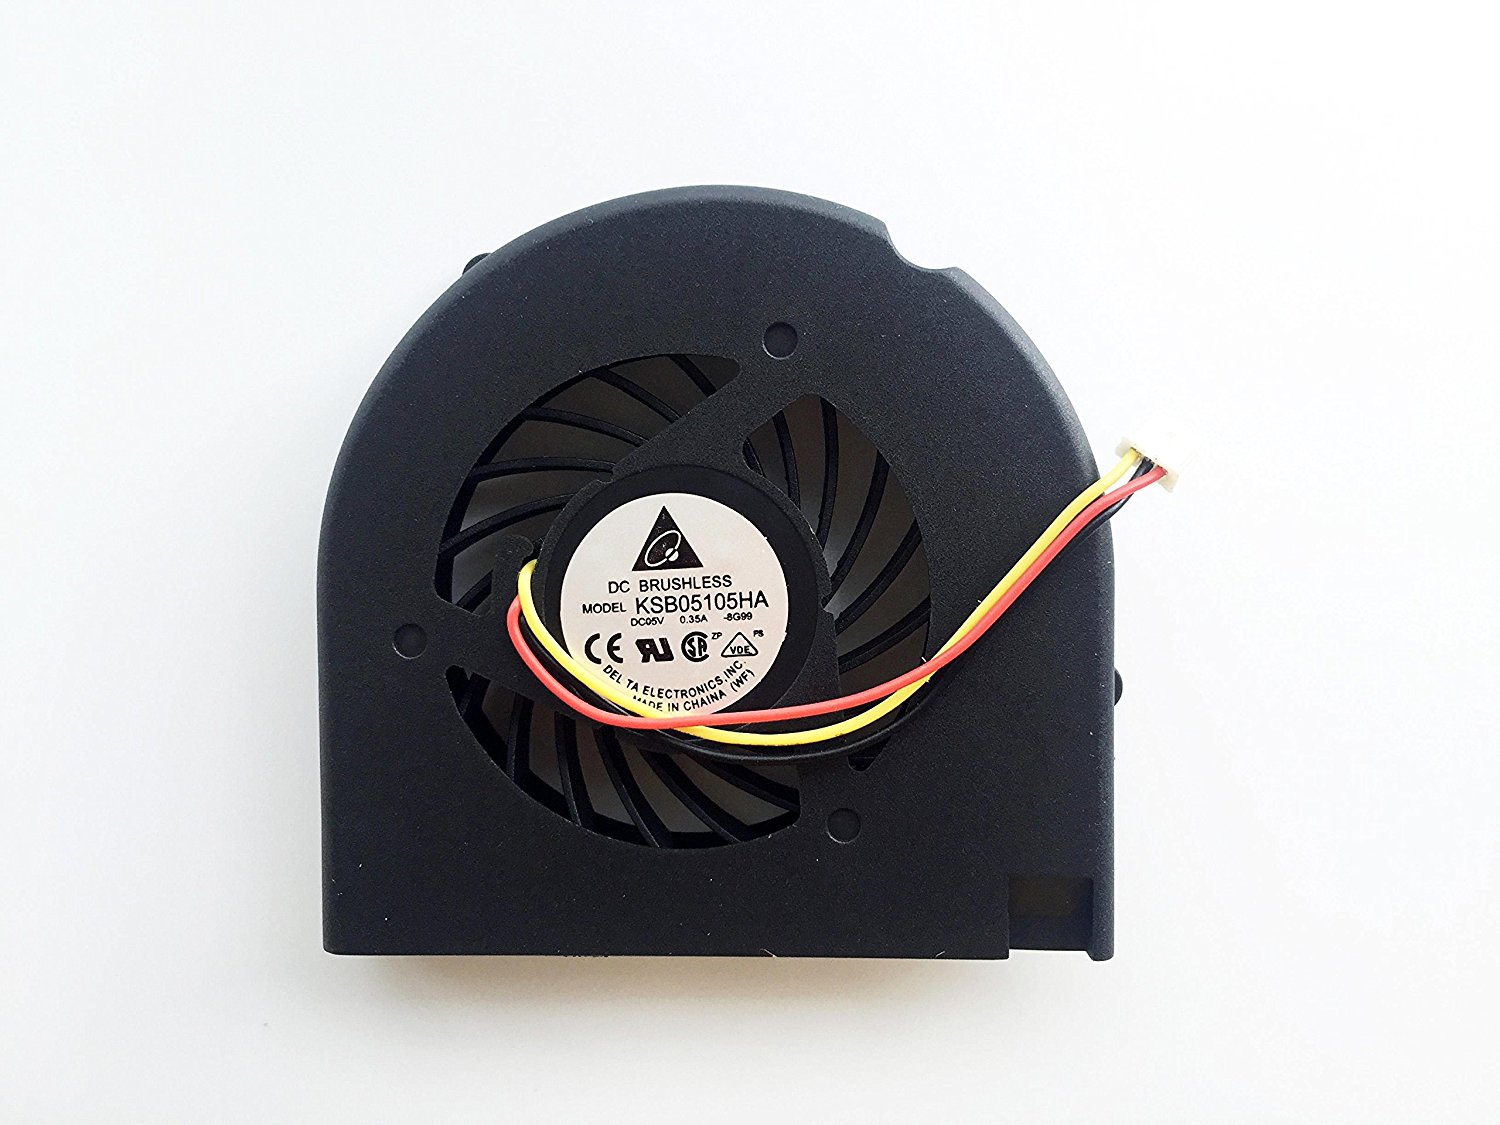 YDLan New CPU Cooling Cooler Fan For Hp Compaq CQ50 CQ60 G50 G60 (3 Screw Hole)